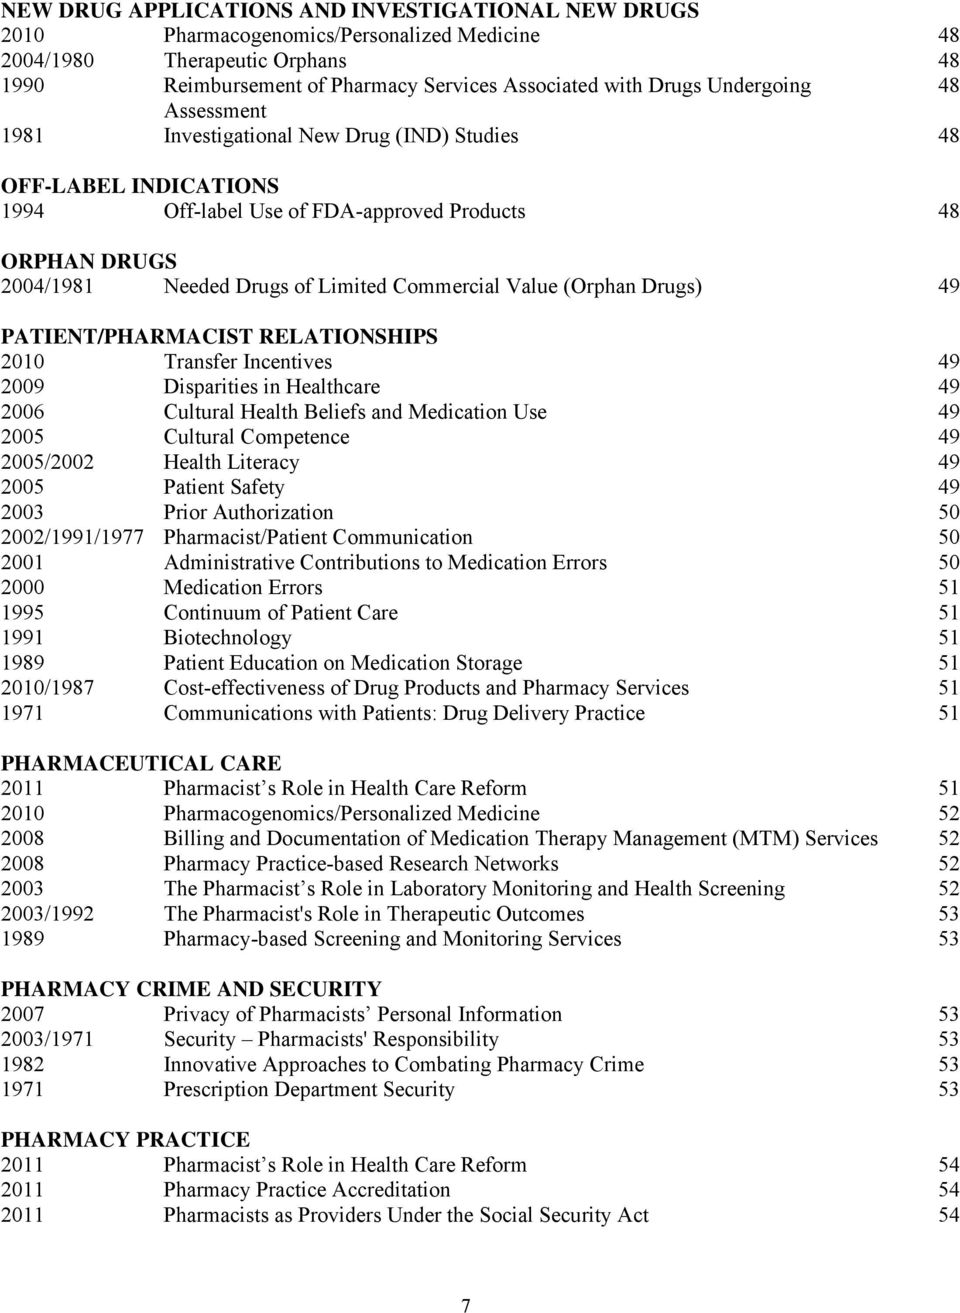 Current Adopted APhA Policy Statements - PDF